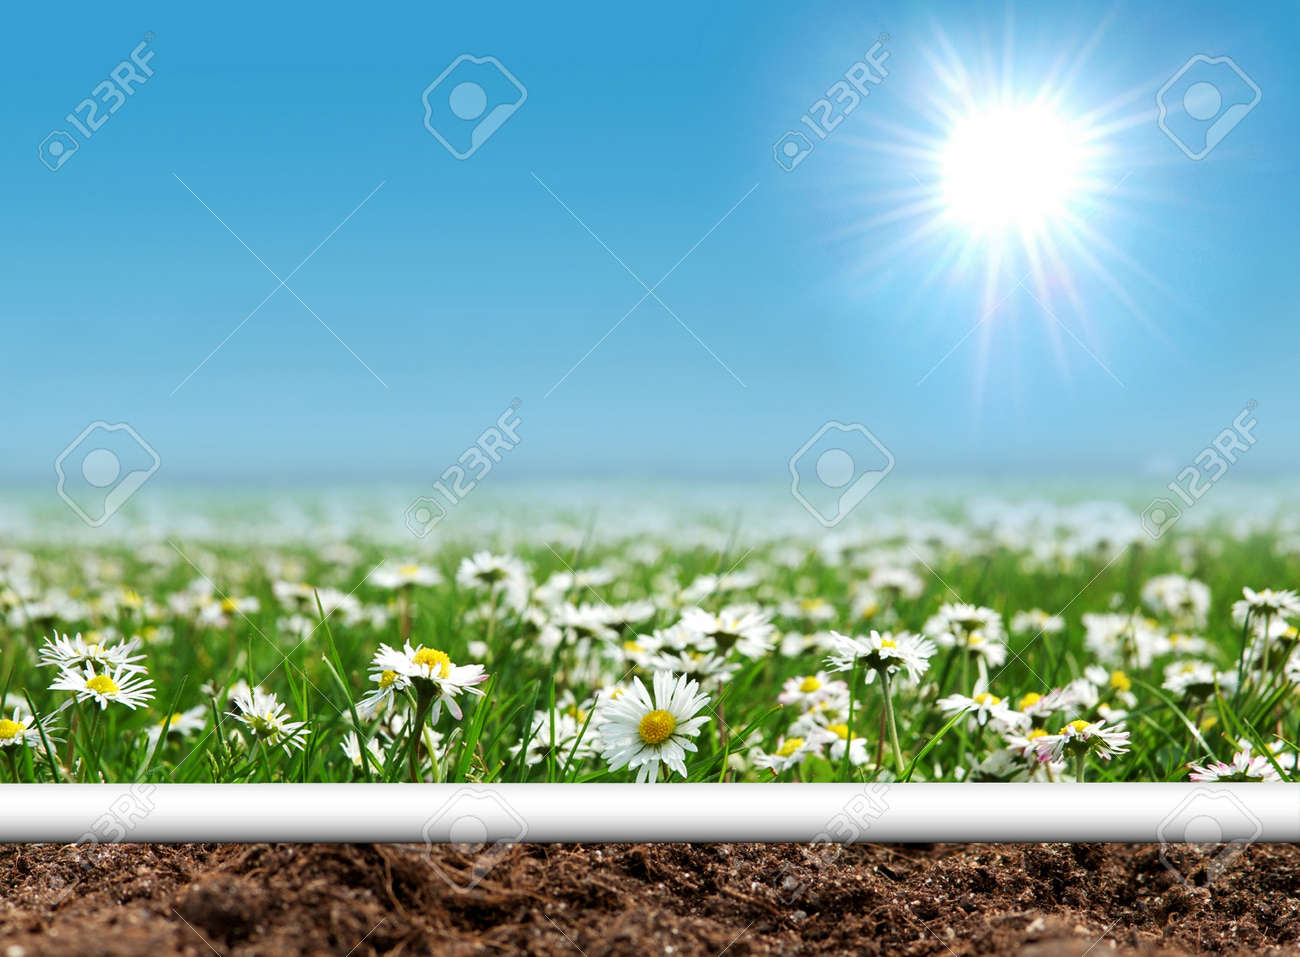 Daisies field with curled page Stock Photo - 8943476